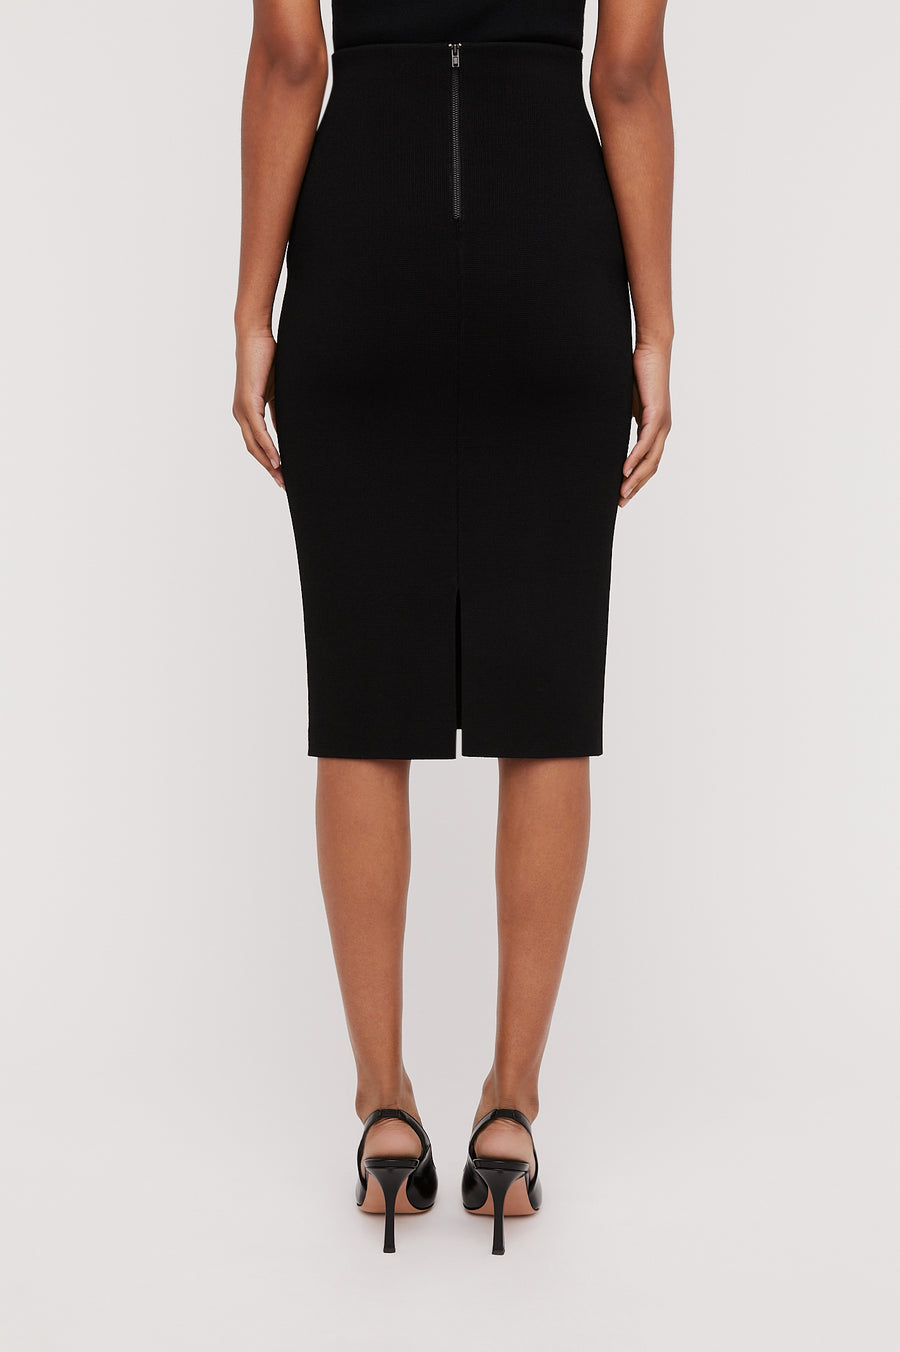 The Crepe Knit Slit Back Skirt is a tailored skirt. It is designed to sit high on the waist